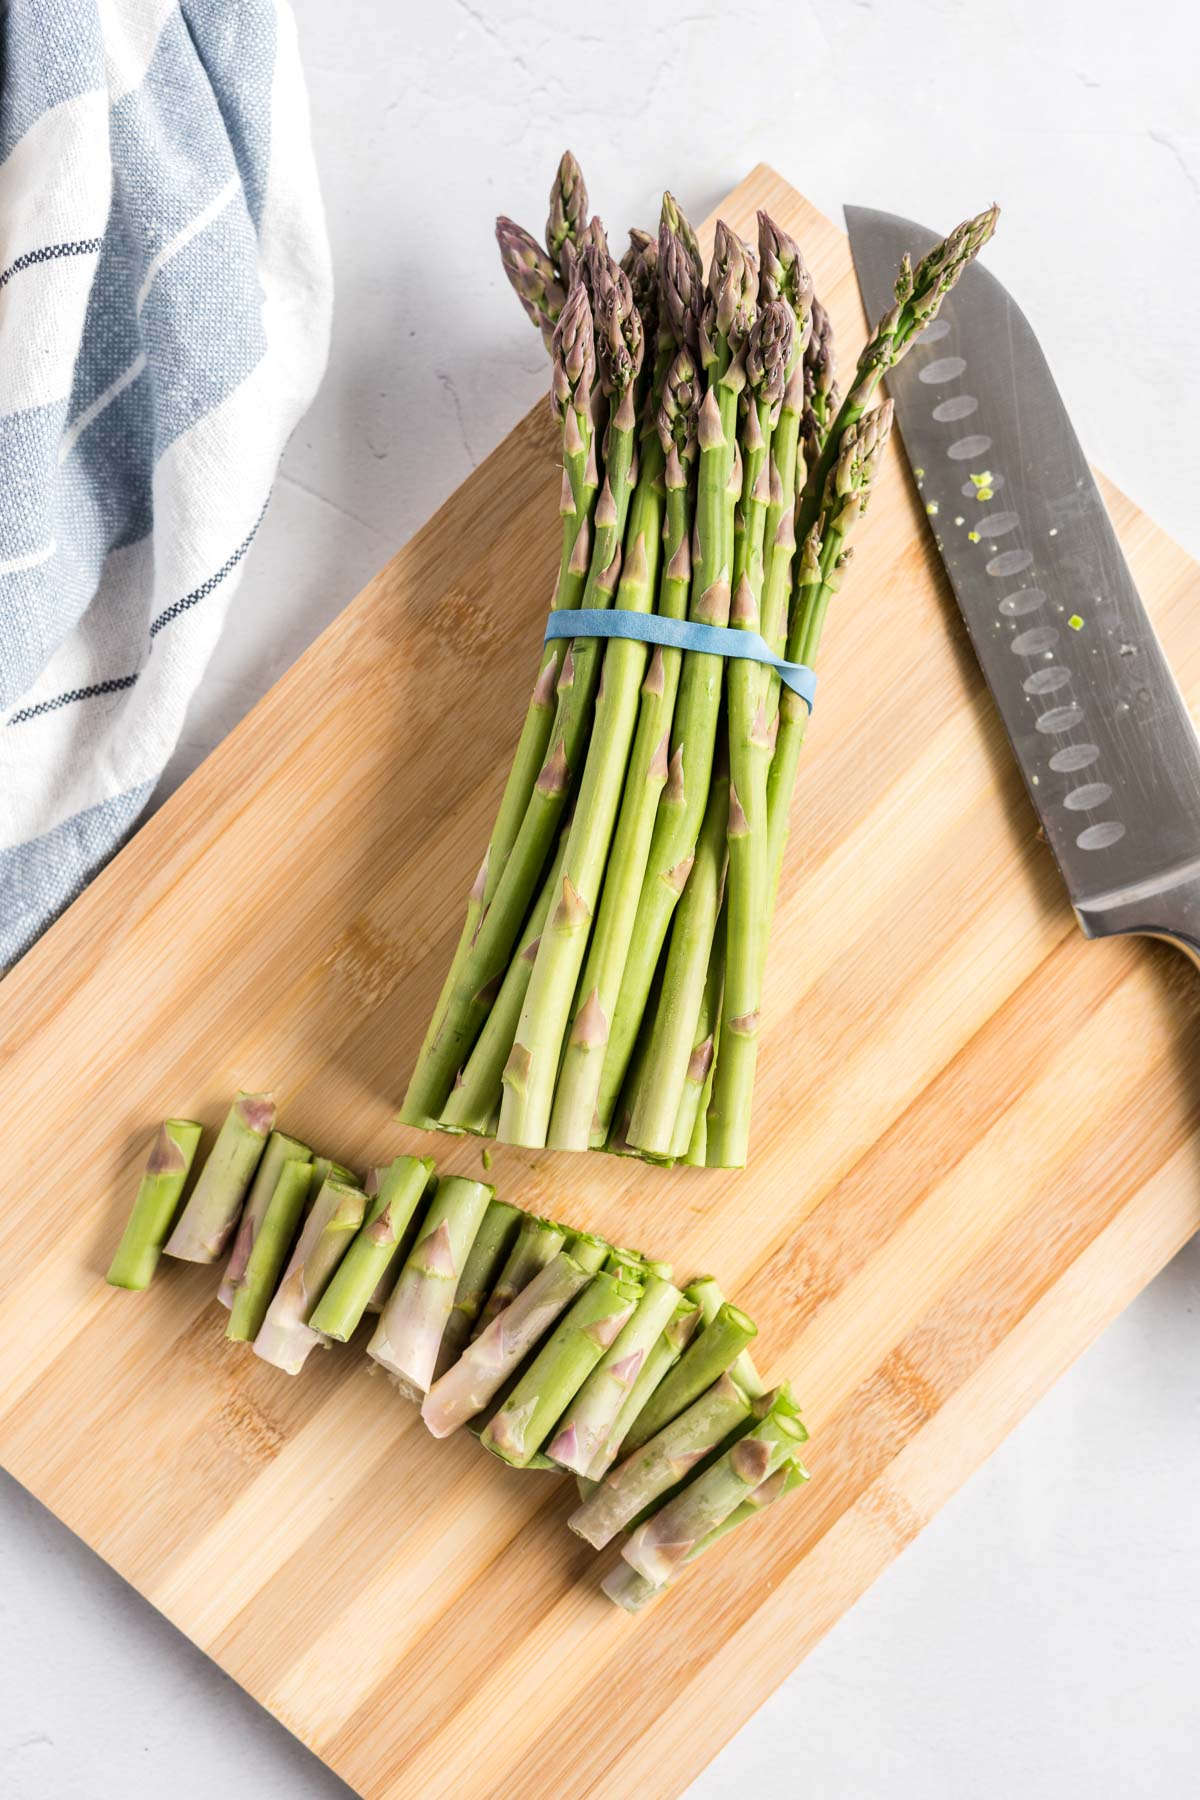 Bunch of asparagus in an elastic band on a wooden cutting board with the ends trimmed off.